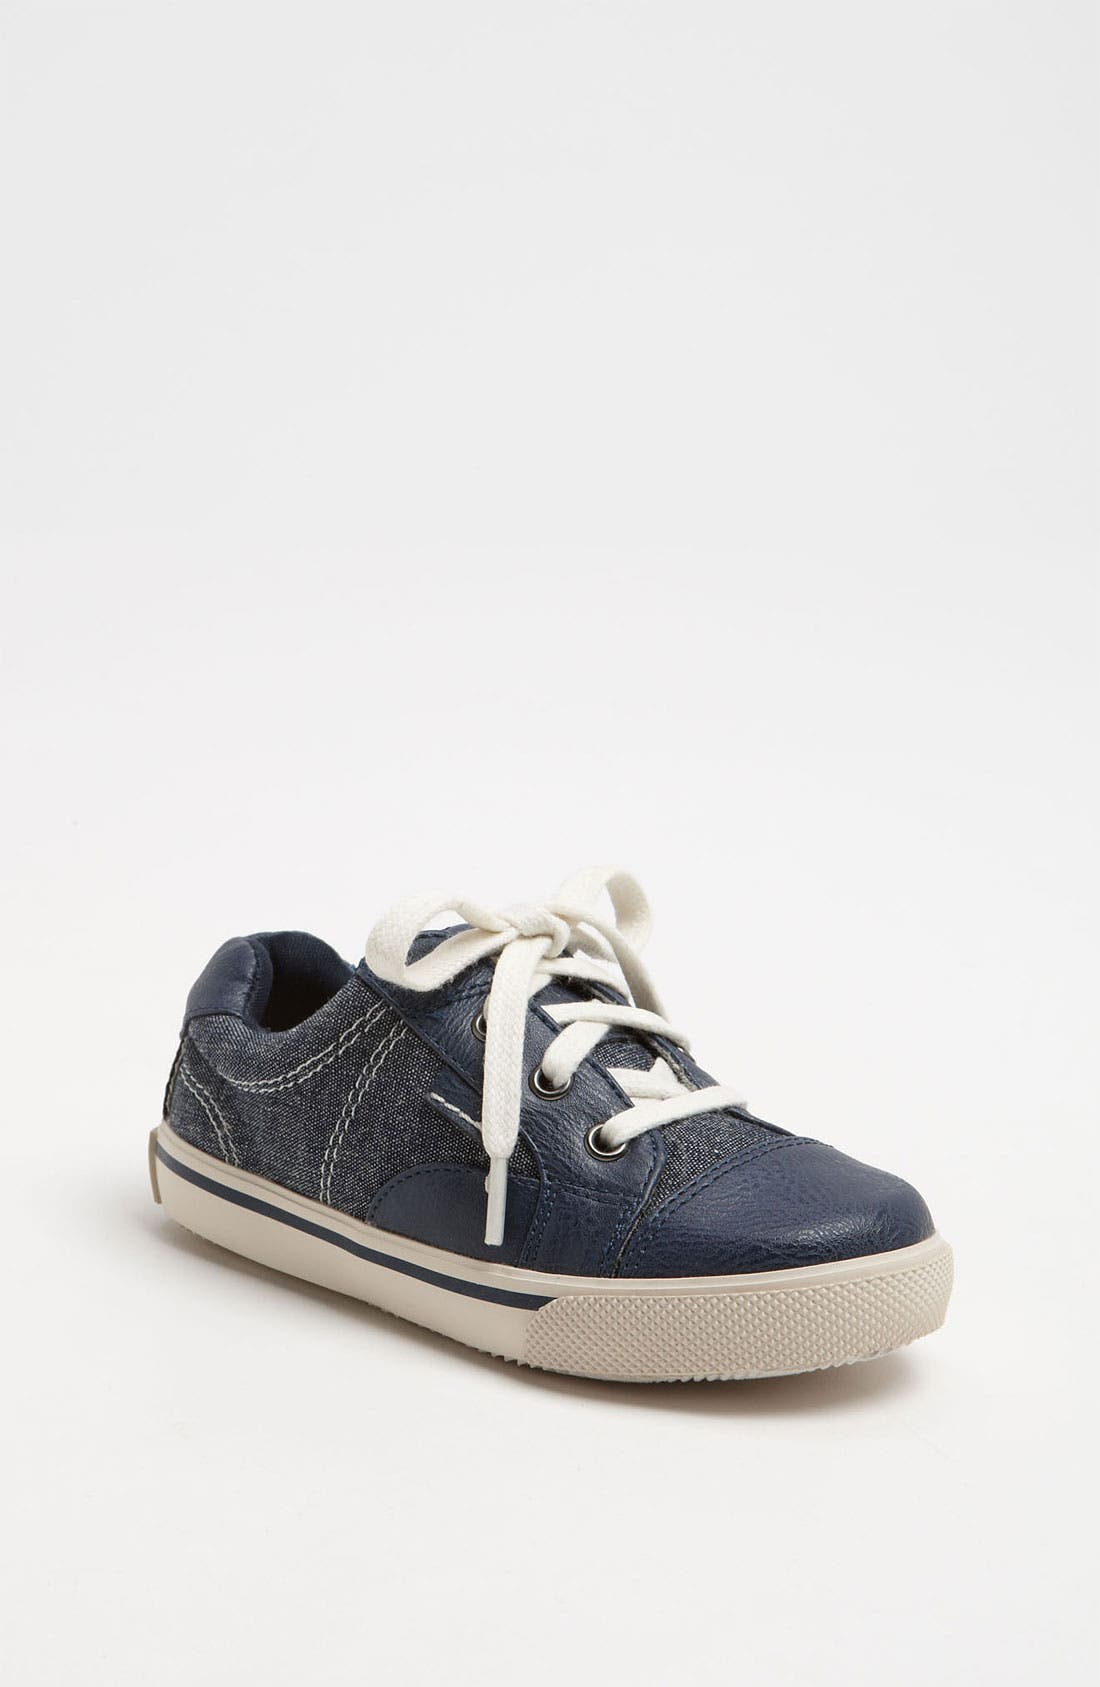 Alternate Image 1 Selected - Cole Haan 'Air Cory' Sneaker (Toddler)